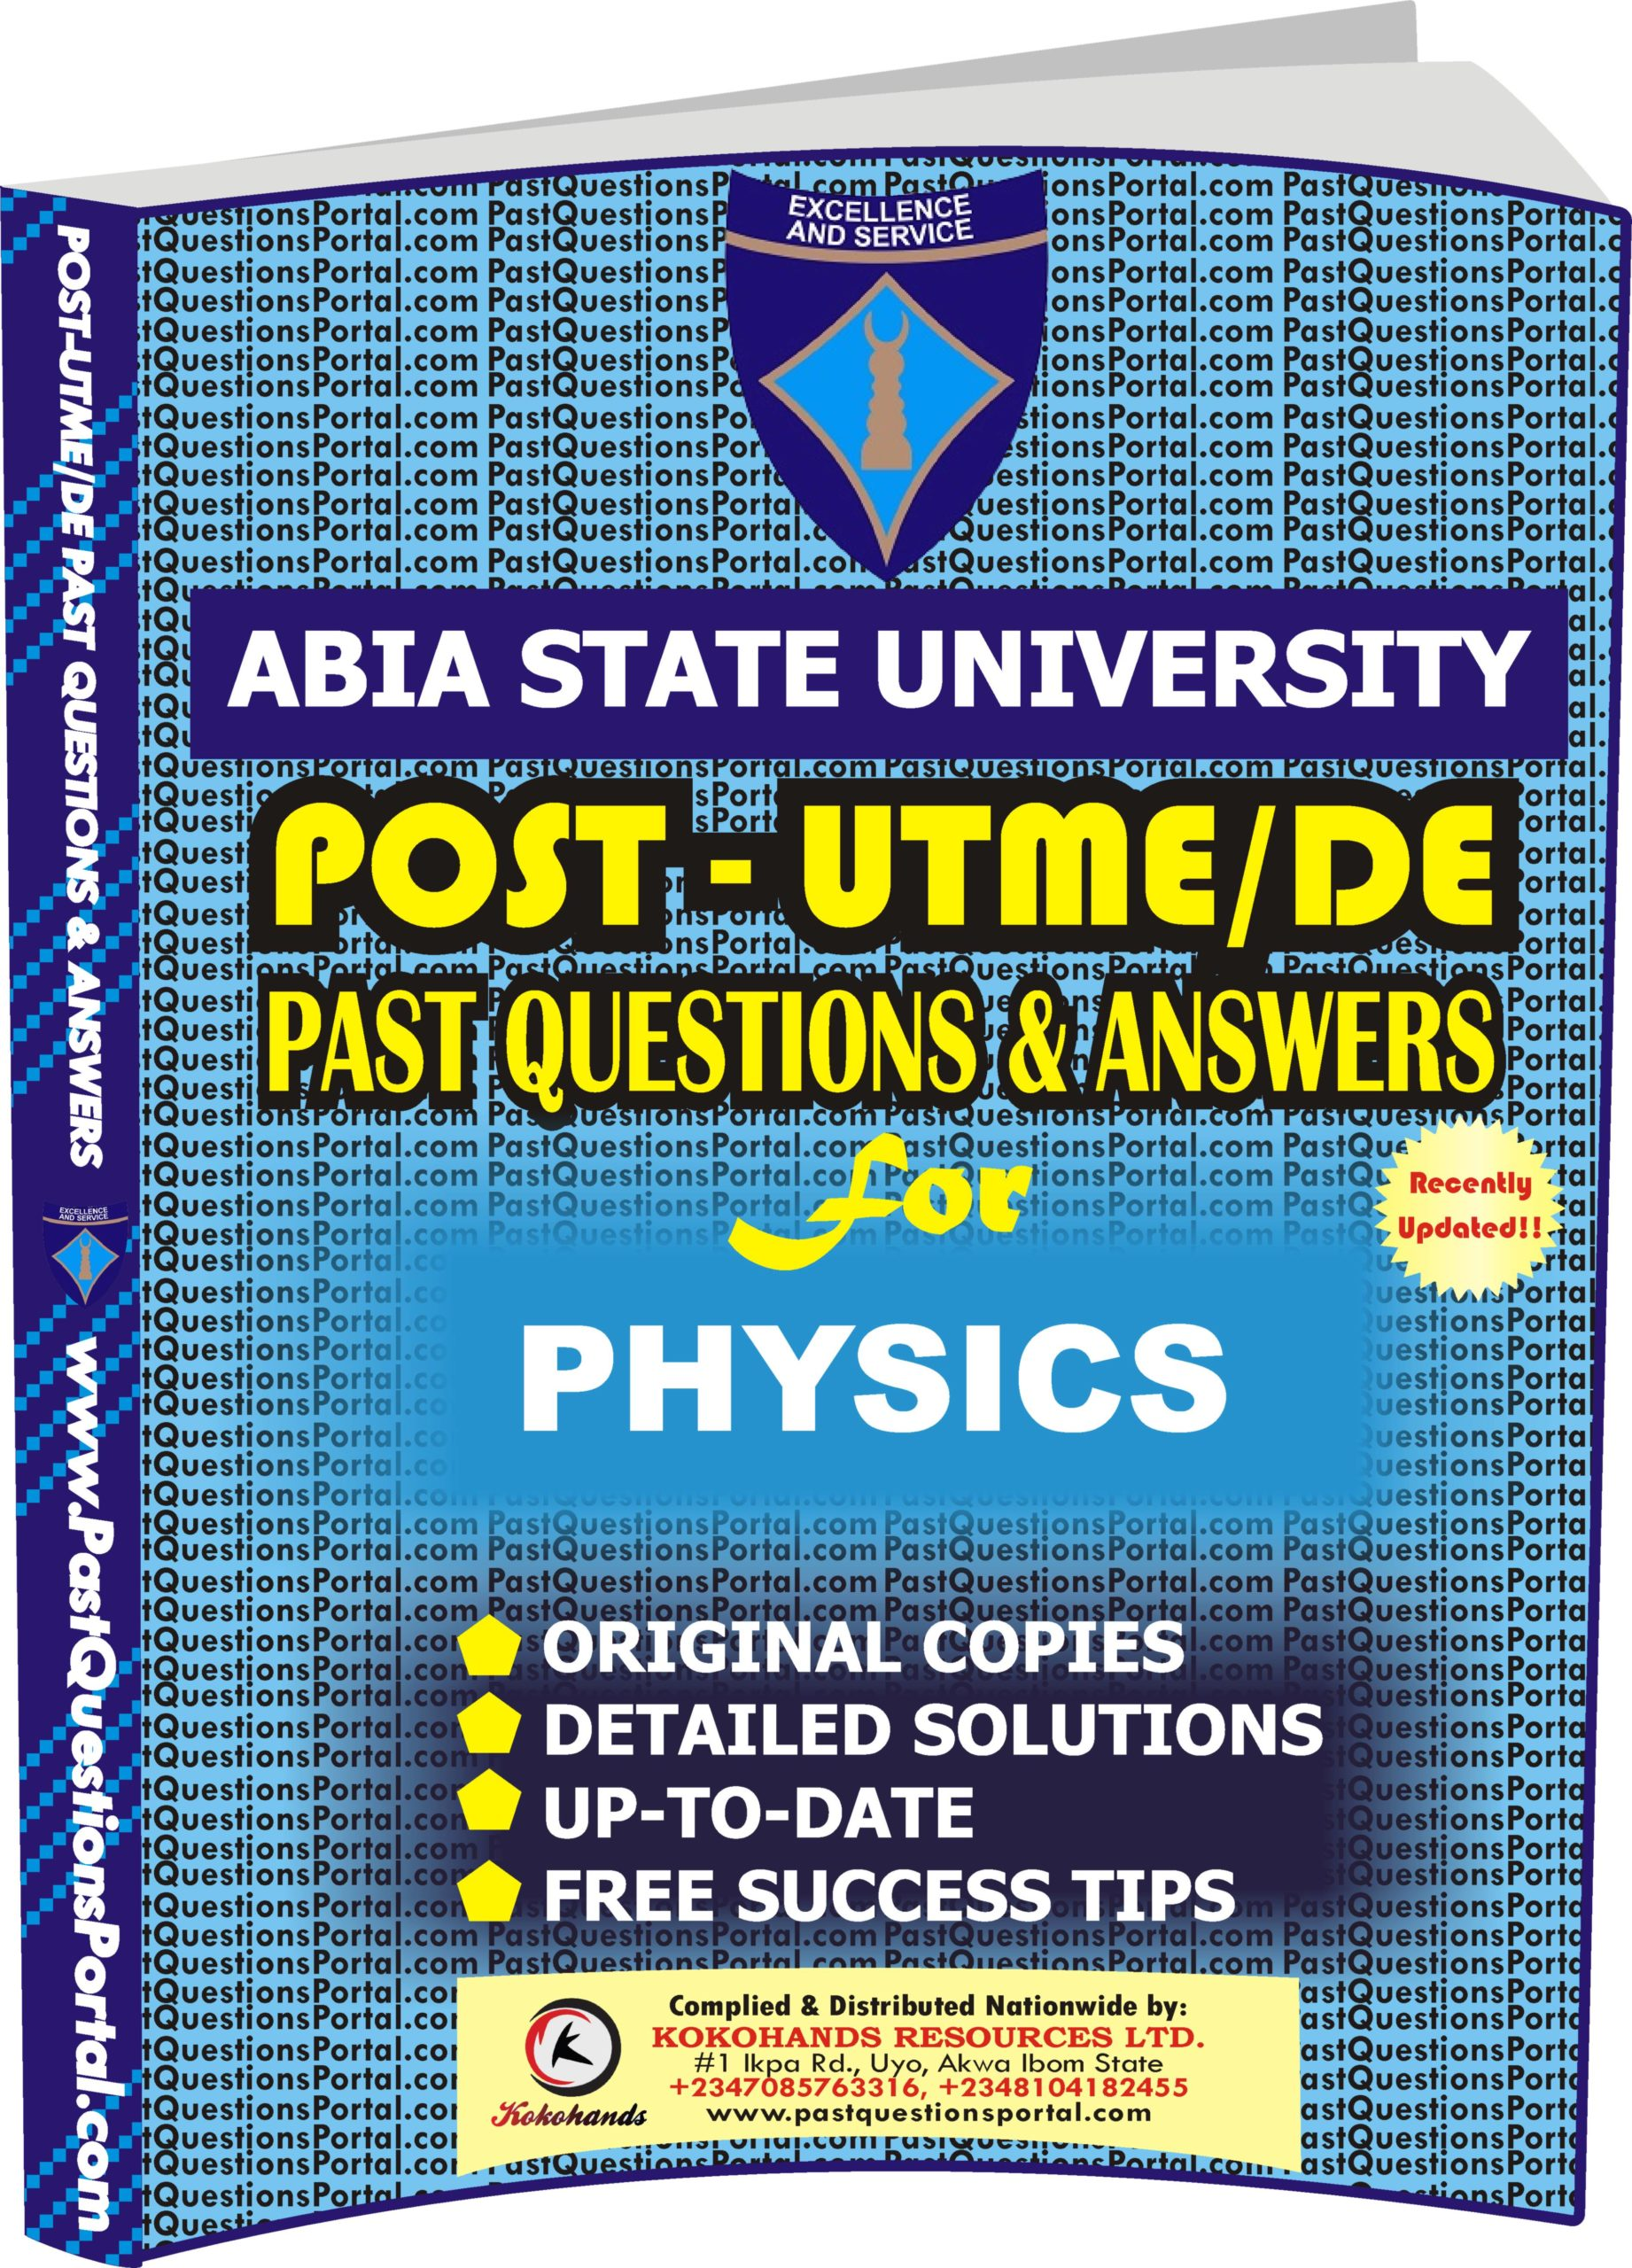 ABSU Post UTME Past Questions for PHYSICS